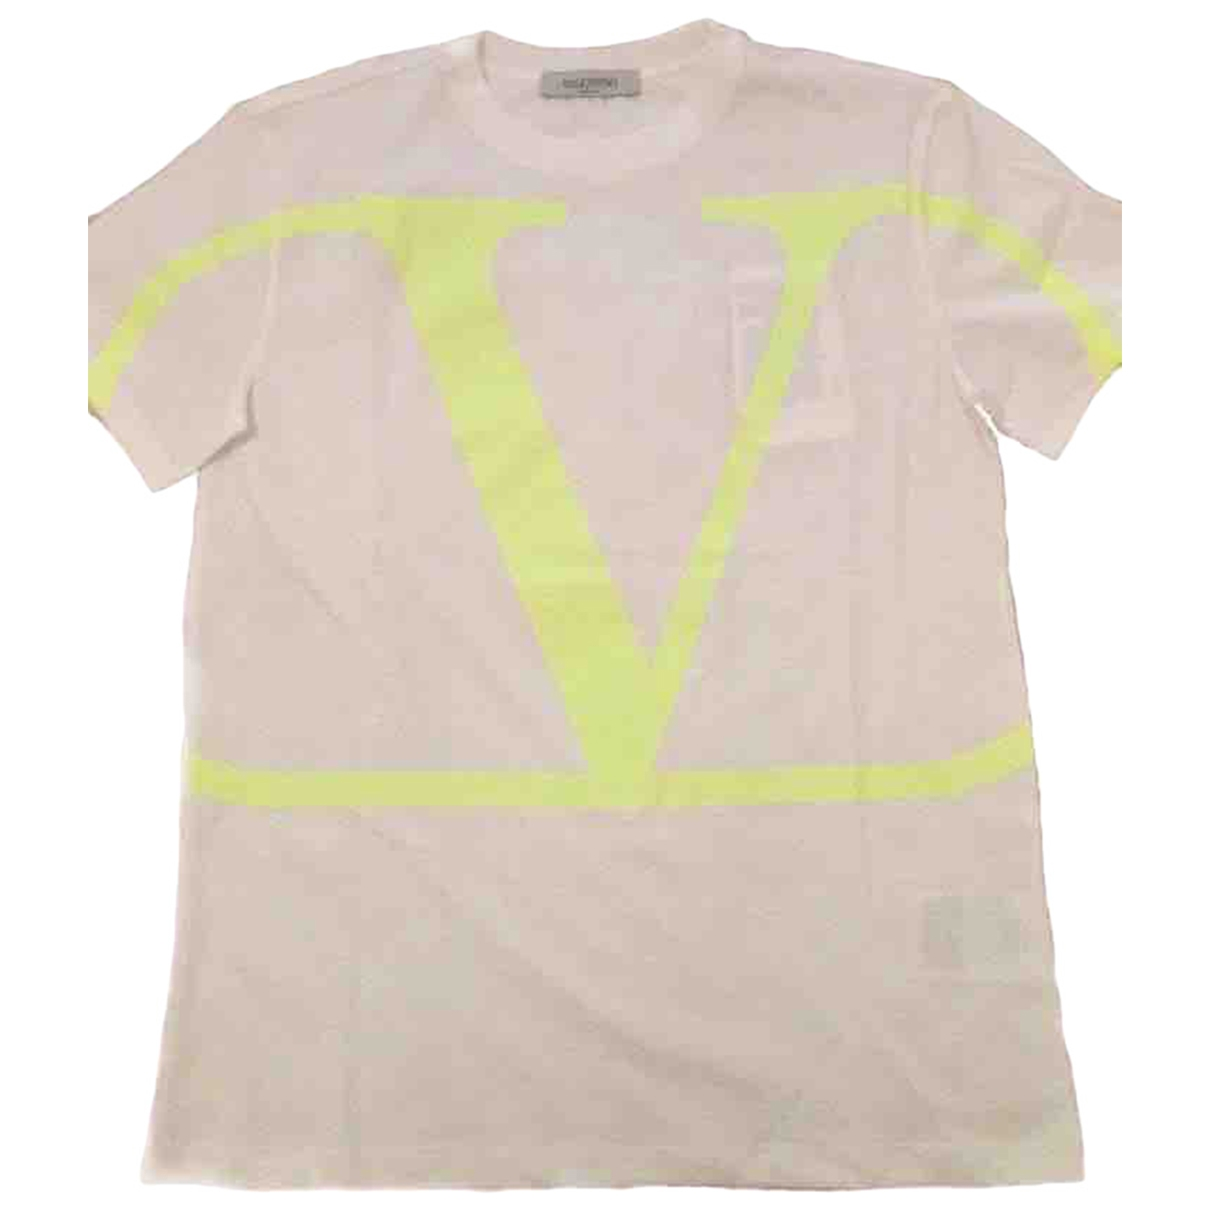 Valentino Garavani \N White Cotton  top for Women 38 IT